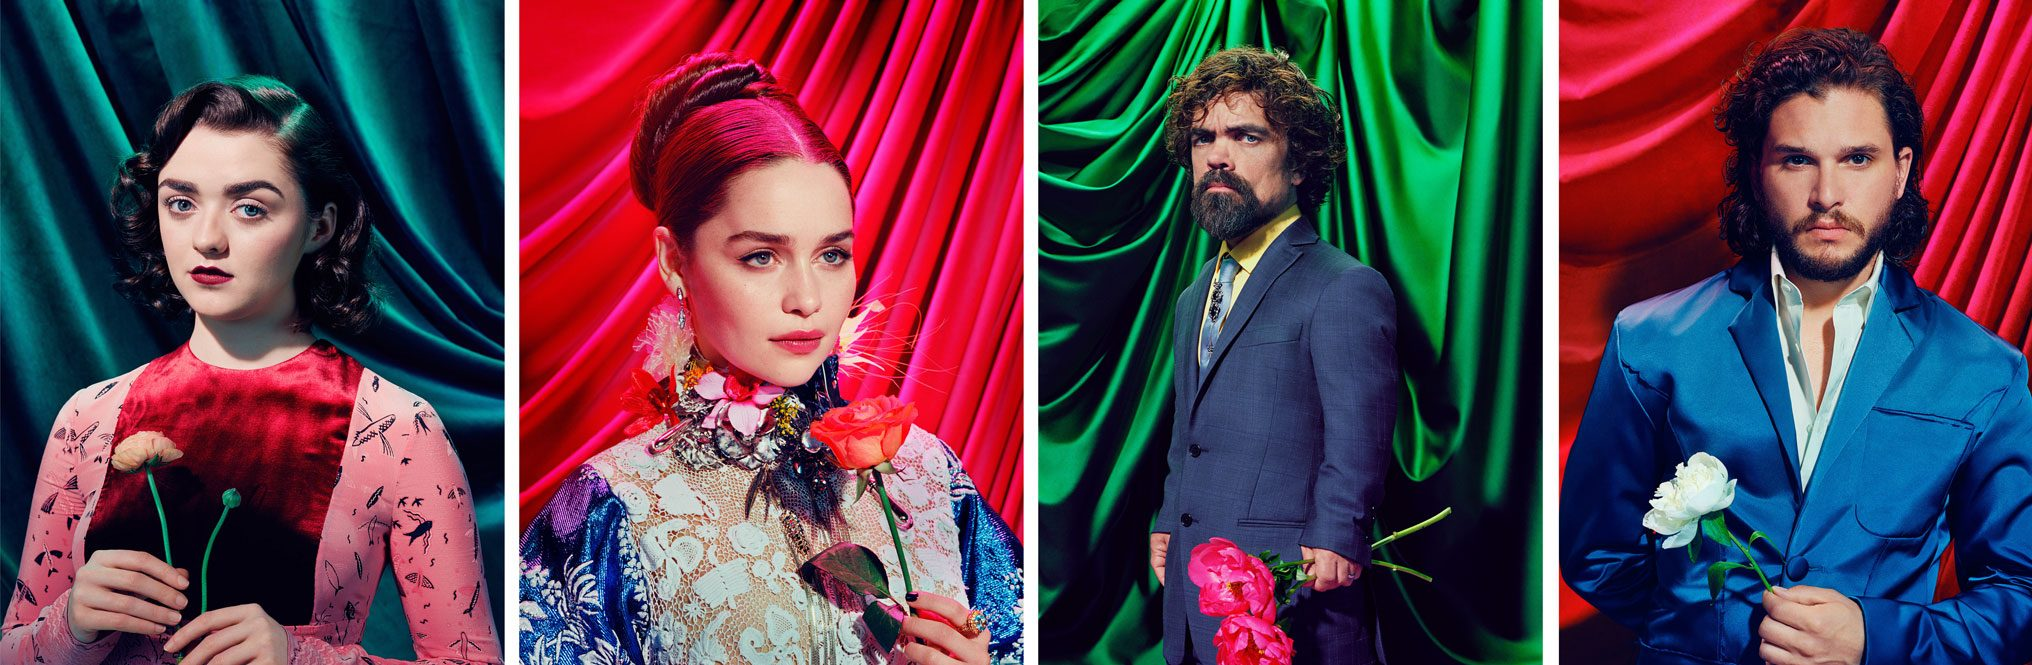 Press: Game of Thrones: How They Make the World's Most Popular Show